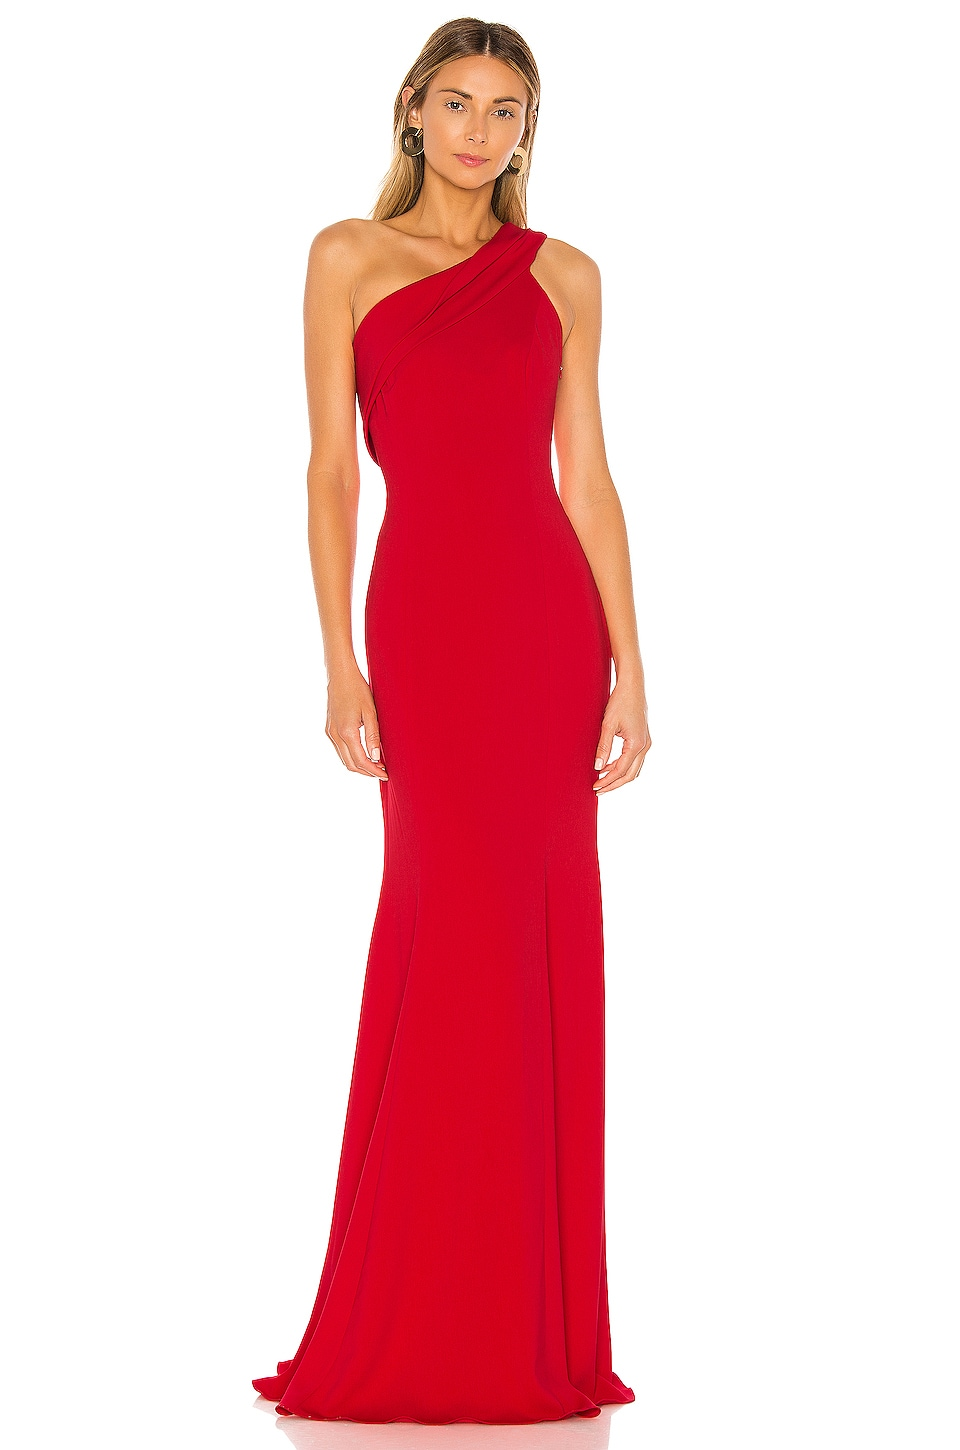 Jay Godfrey Stone Gown in Bold Red